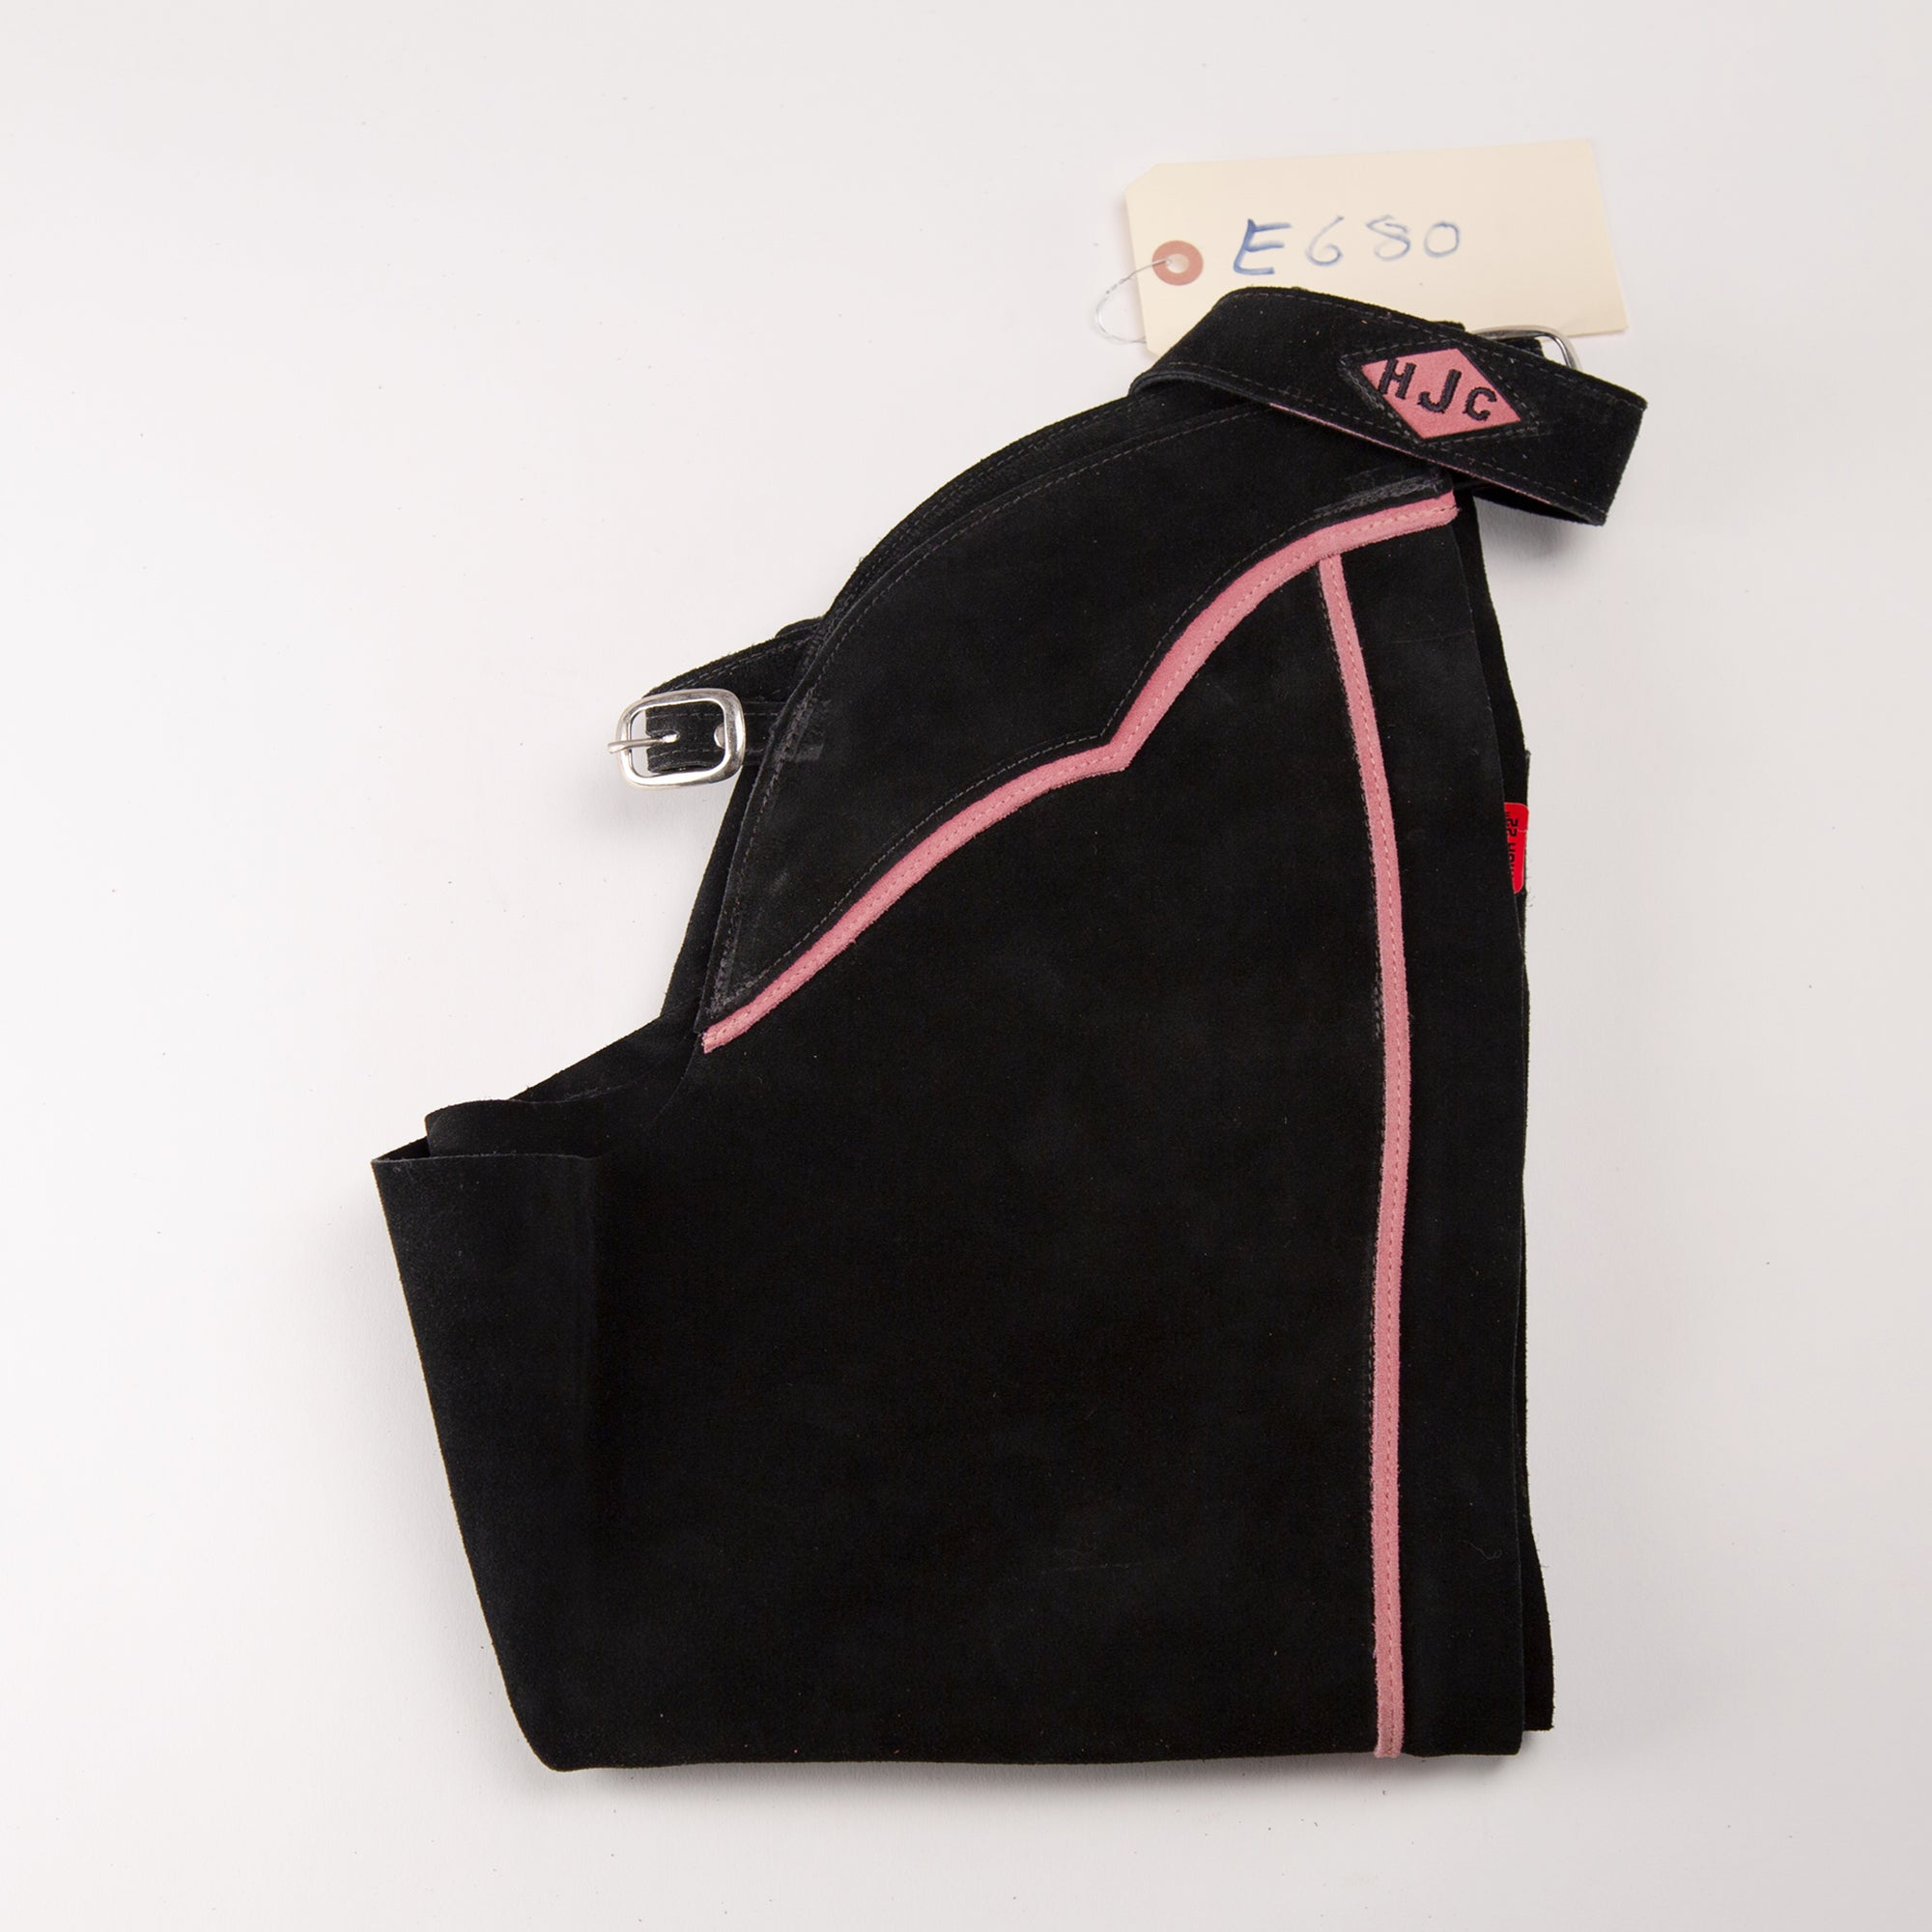 English Schooling Chaps - Black Suede - Pink Stripe and (HJC)Monogram